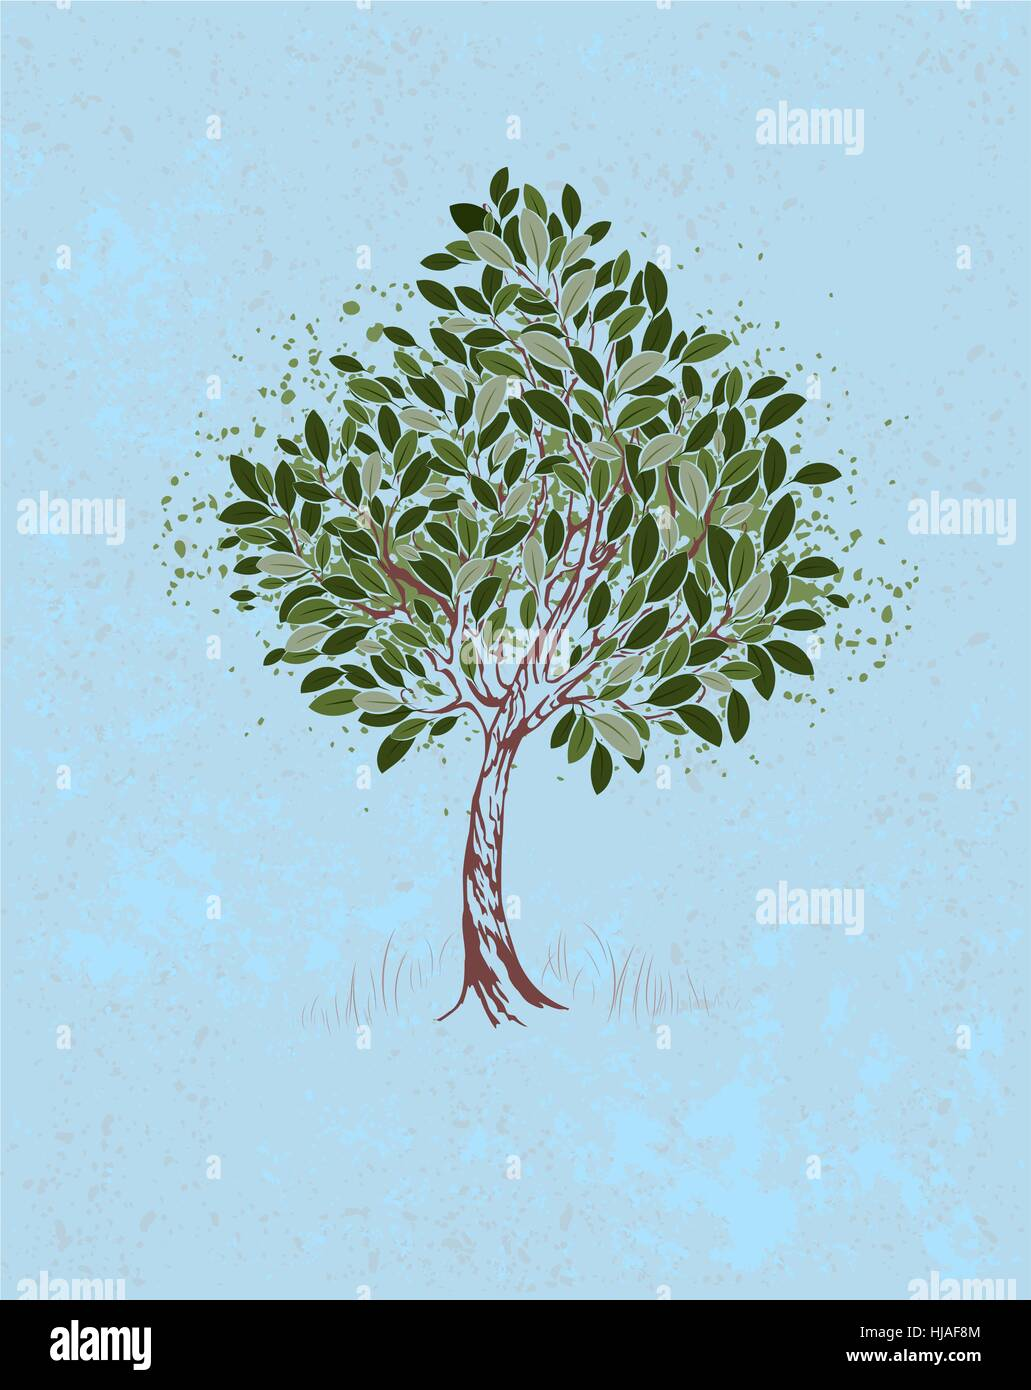 artistically painted young tree with green leaves on a blue textural background. - Stock Vector